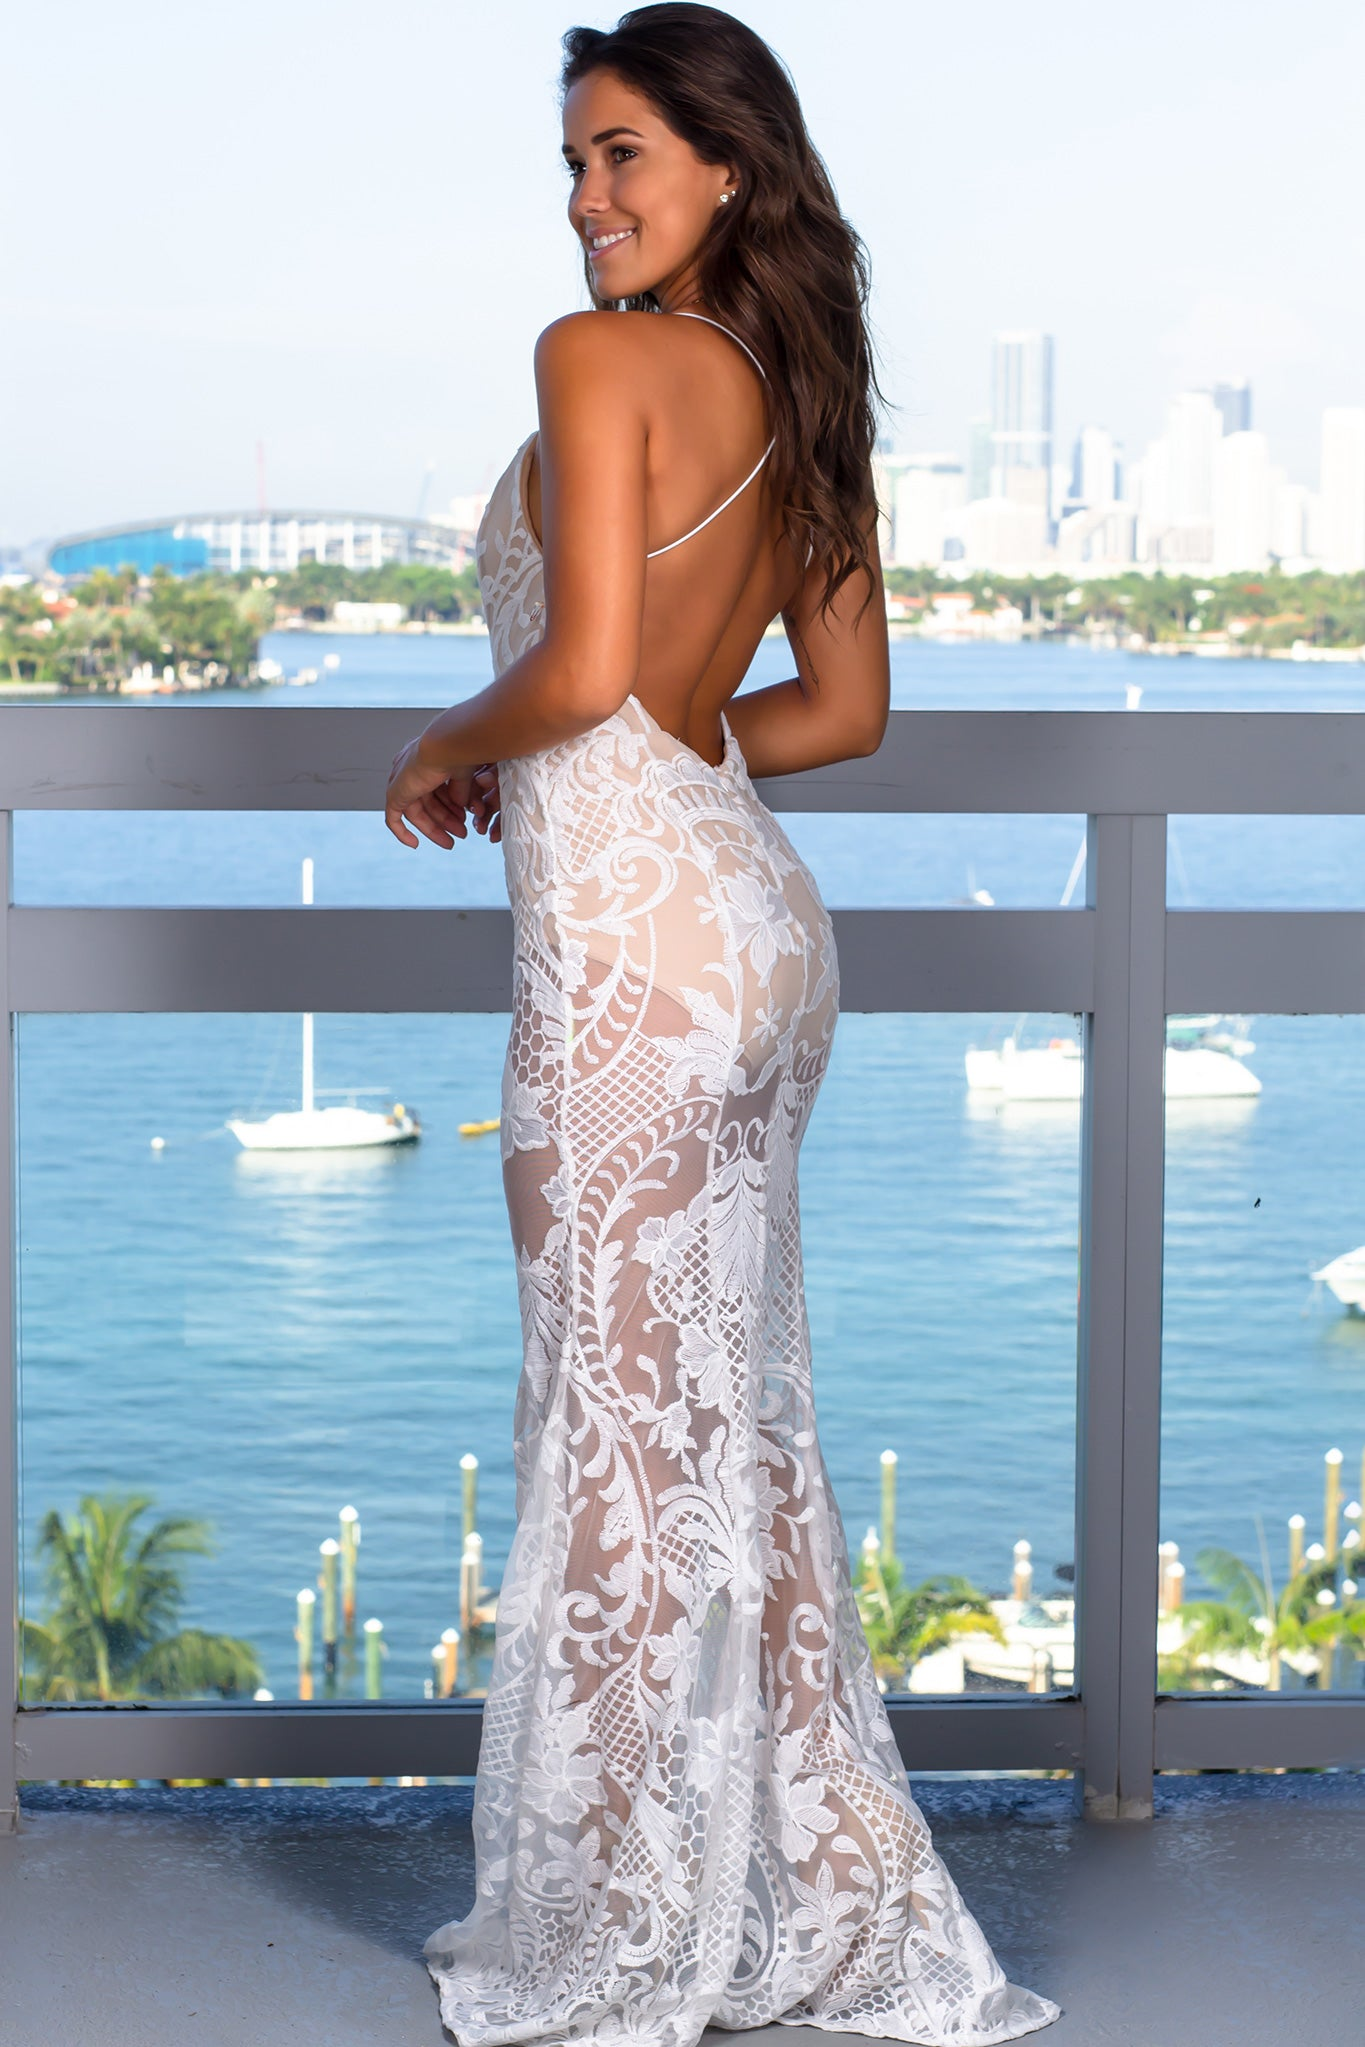 White and Beige Embroidered Maxi Dress with Open Back